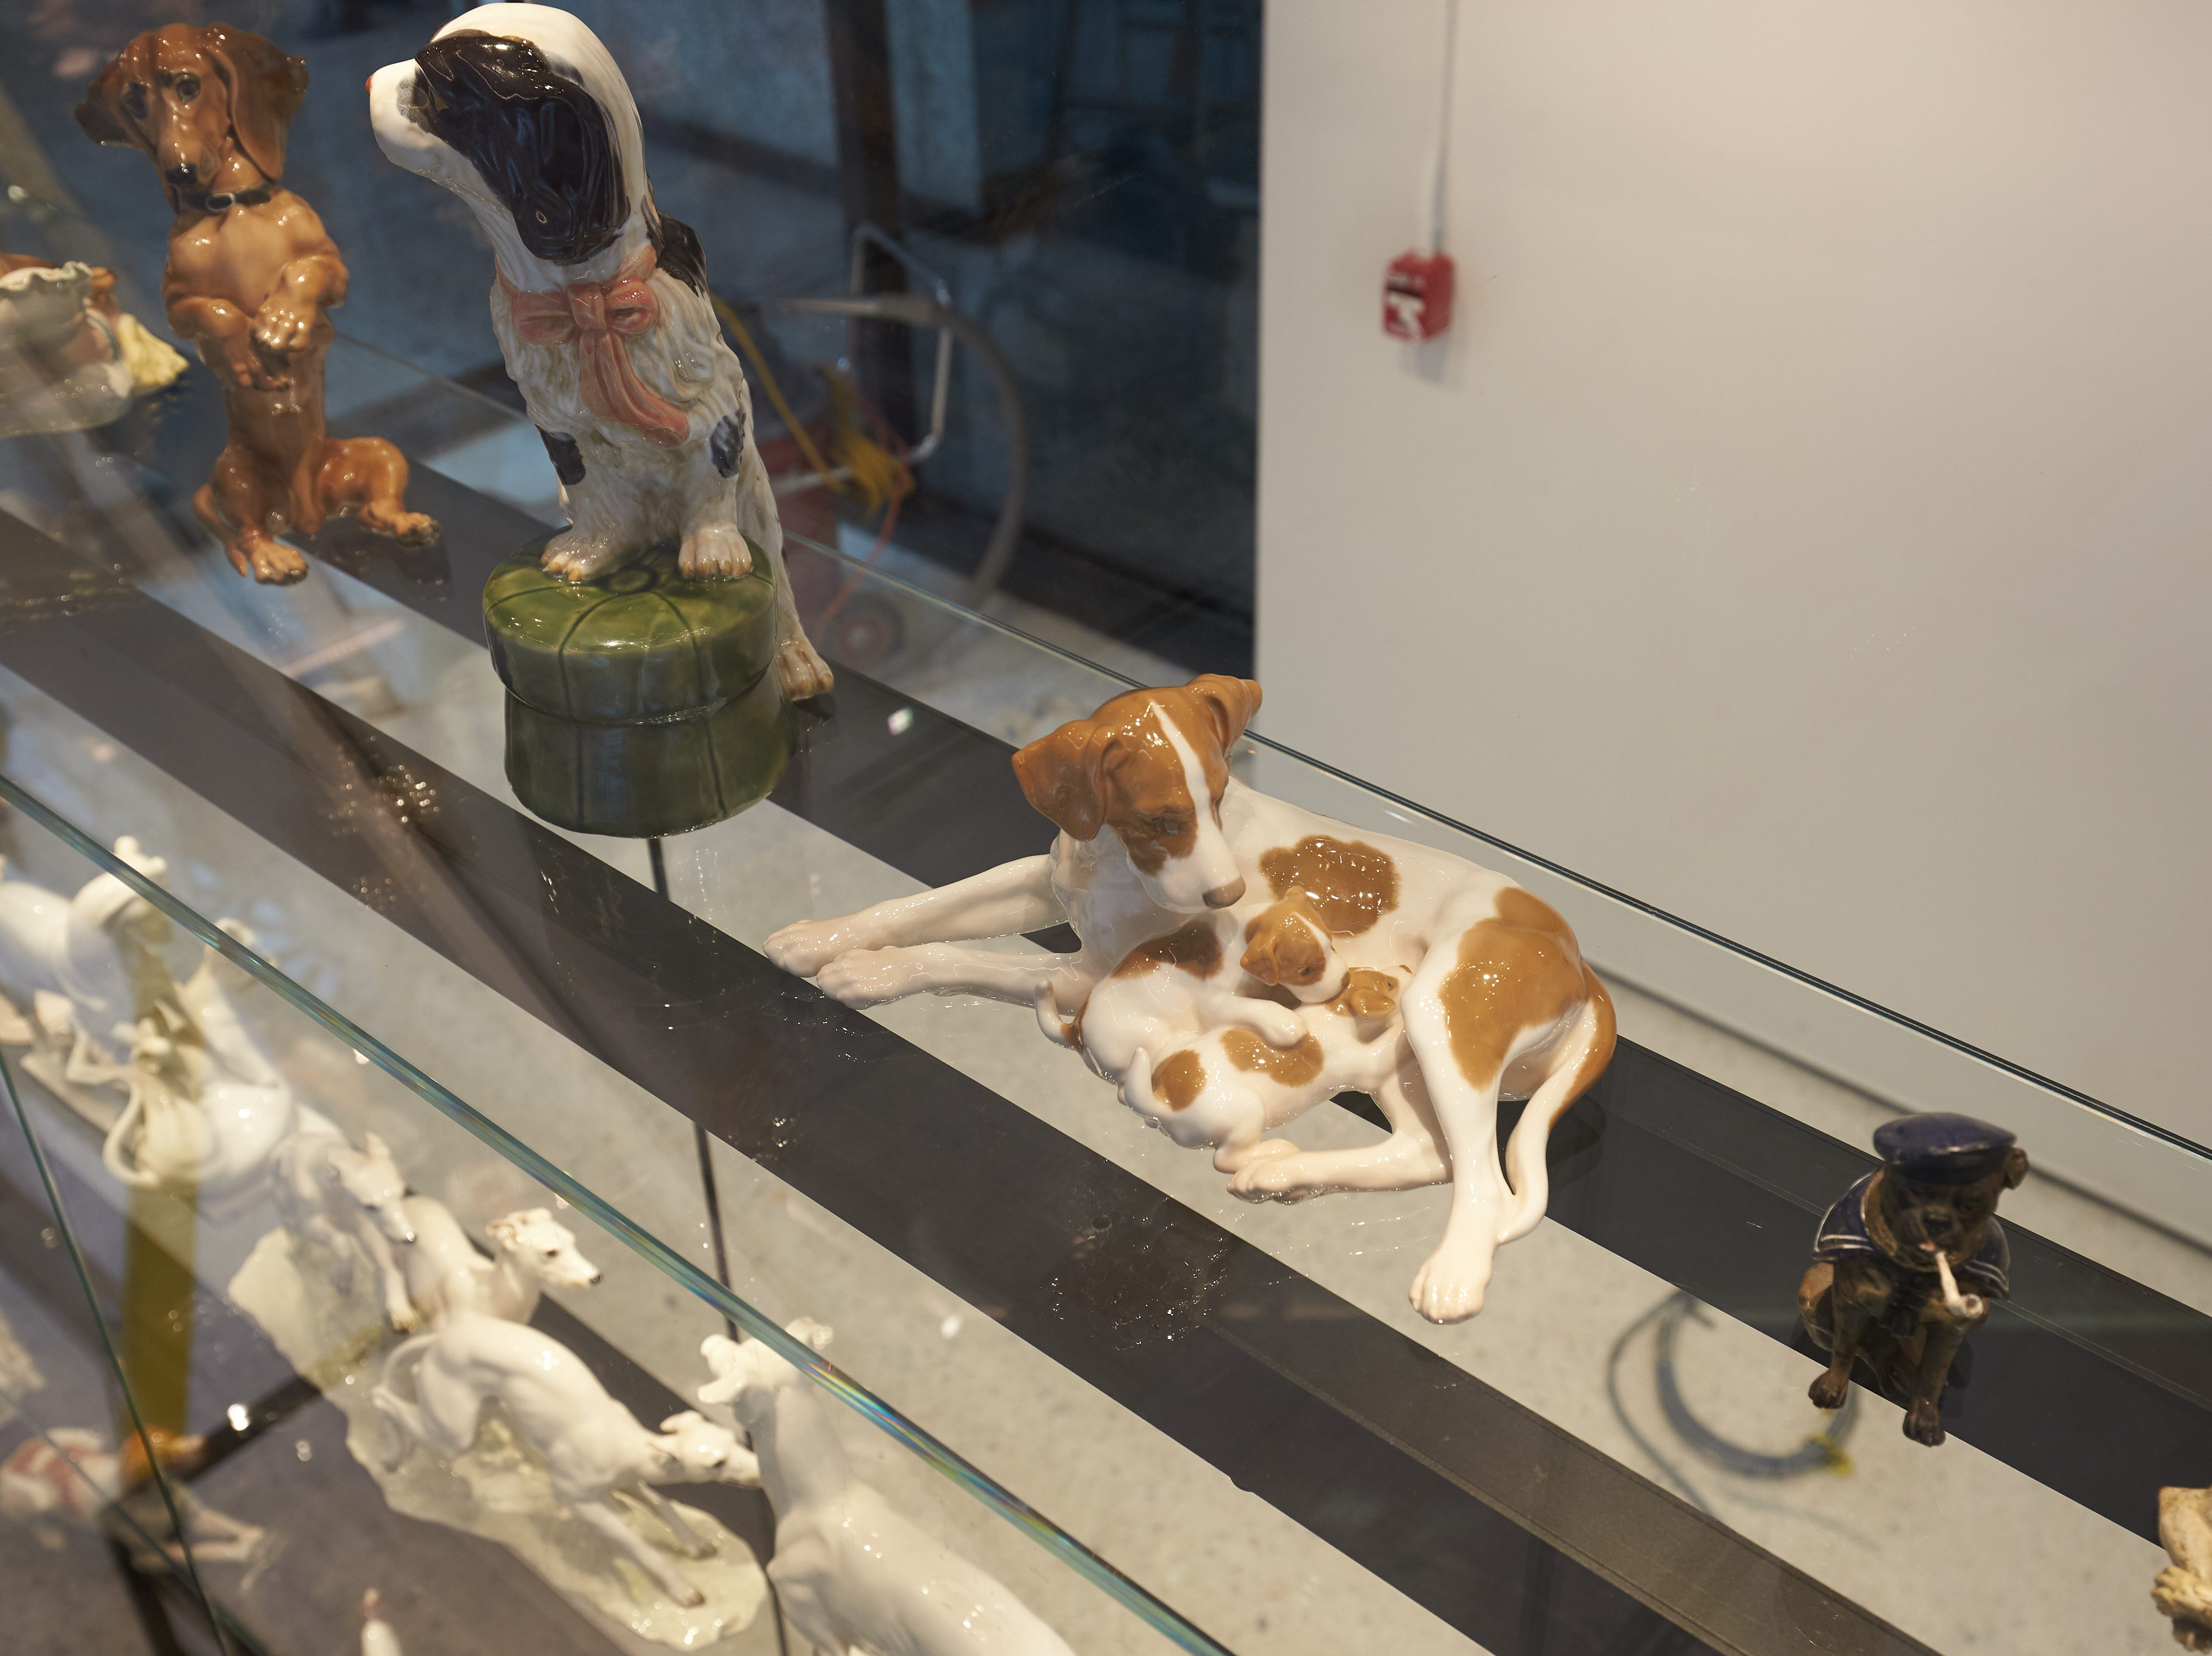 The Museum of the Dog has rare porcelain and bronze dog statues.